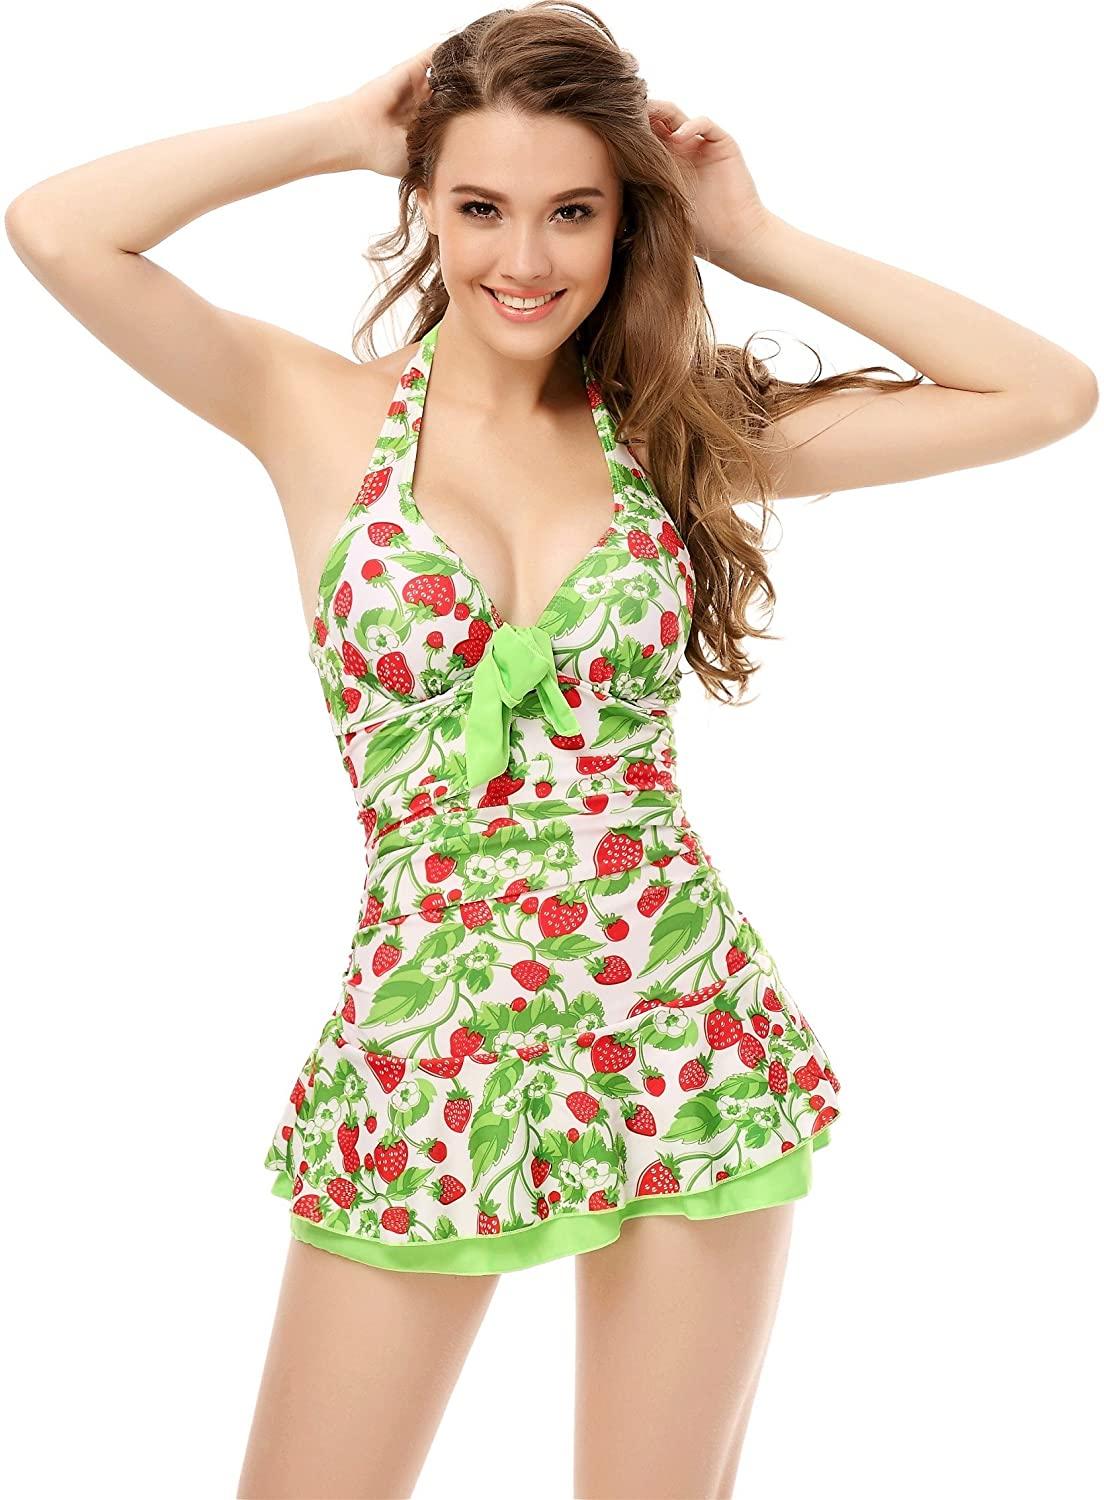 19098ba51ea81 Top 10 wholesale Strawberry Halter Swimsuit - Chinabrands.com